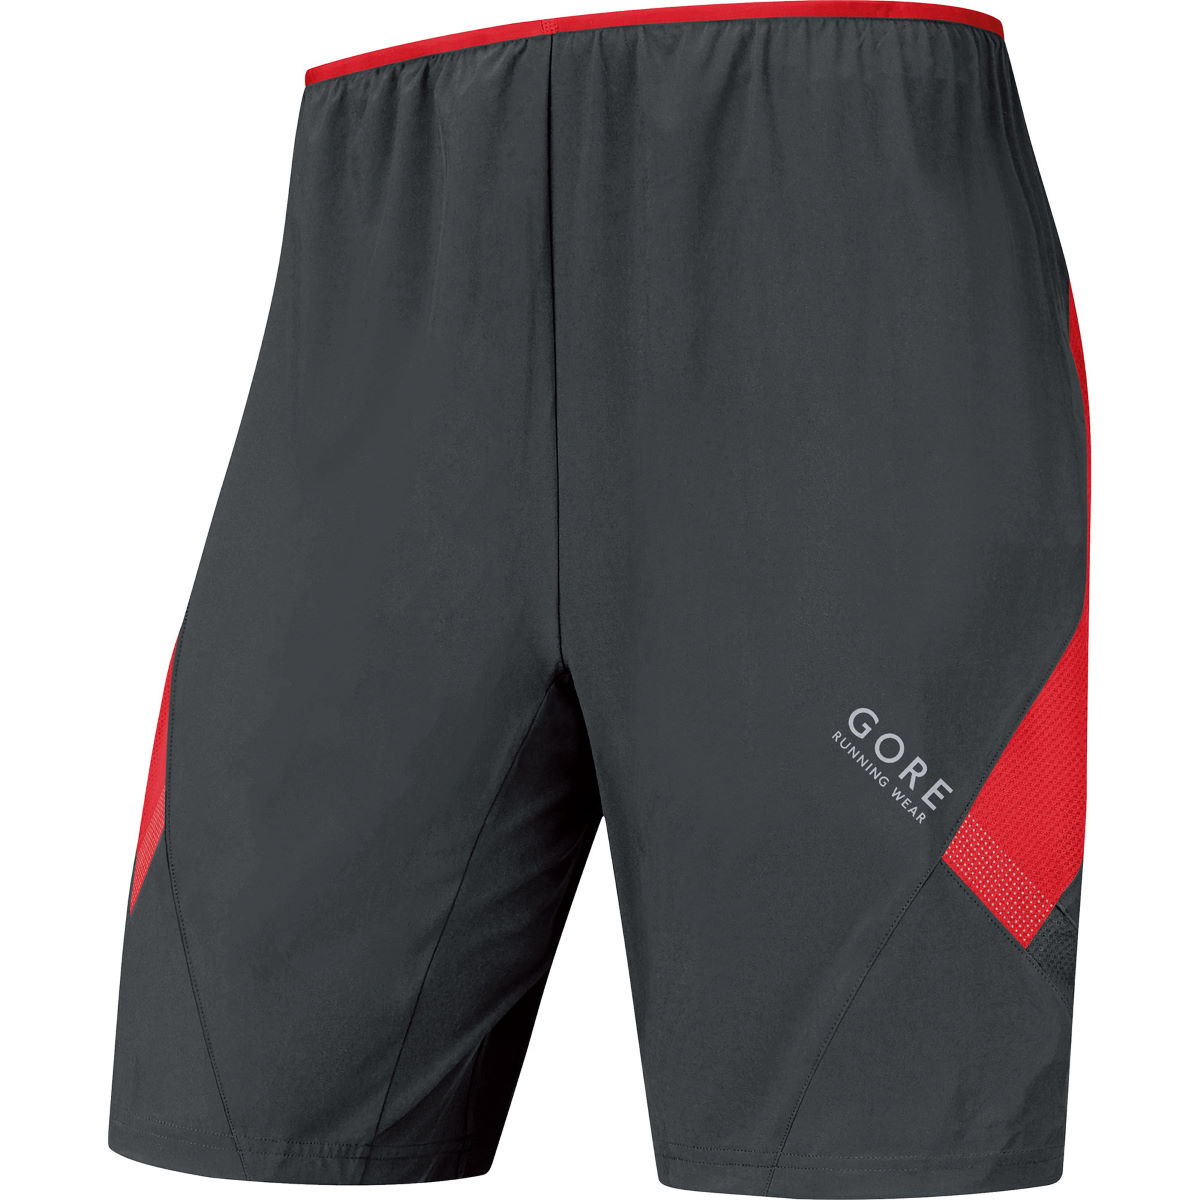 Short Gore Running Wear Air (2 en 1) - XXL black/red